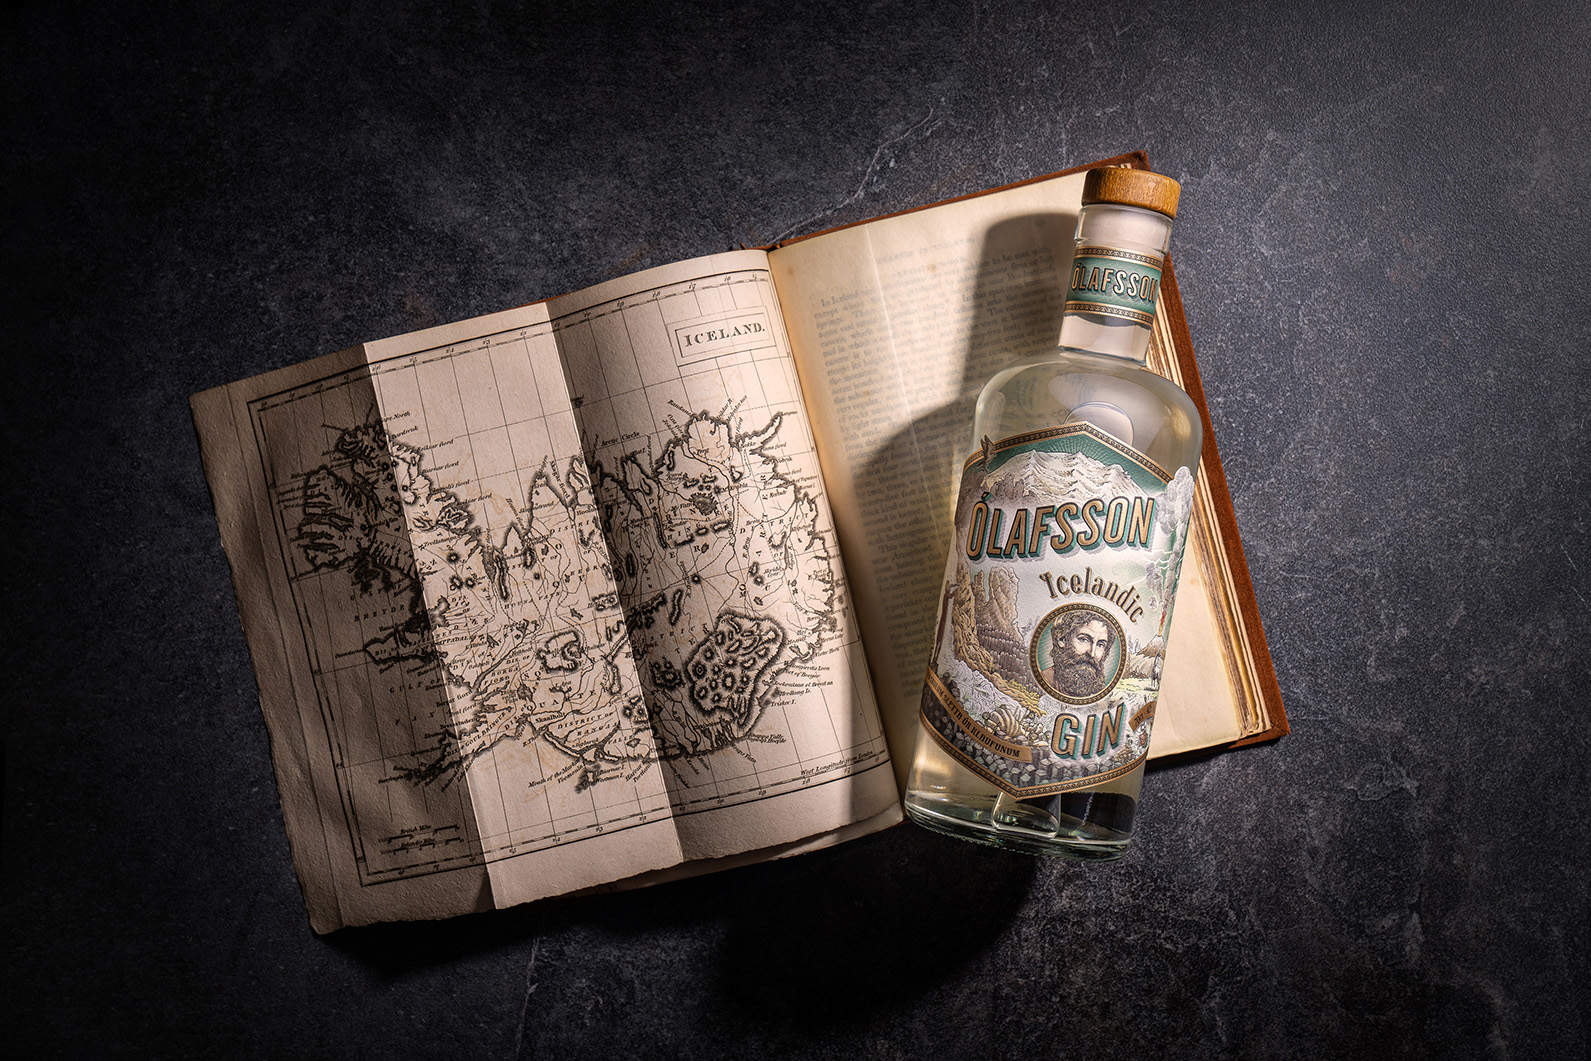 Olafsson Icelandic Gin Packaging Design by The Rooster Factory